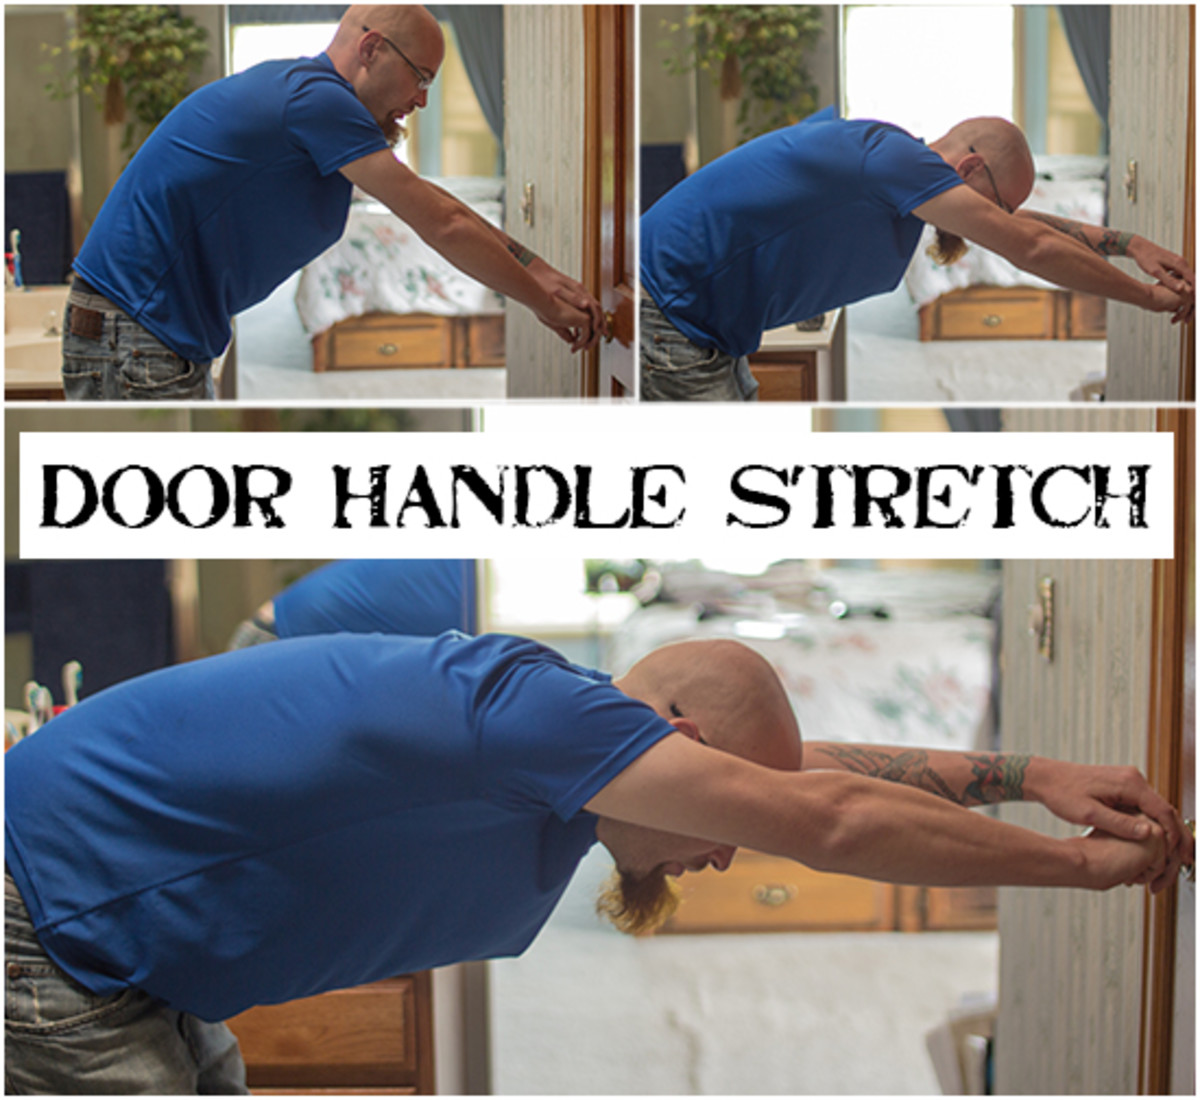 For the door handle stretch, grasp a secured waist-level object and step back until your body is bent perpendicular from your legs, with your arms reached before you.